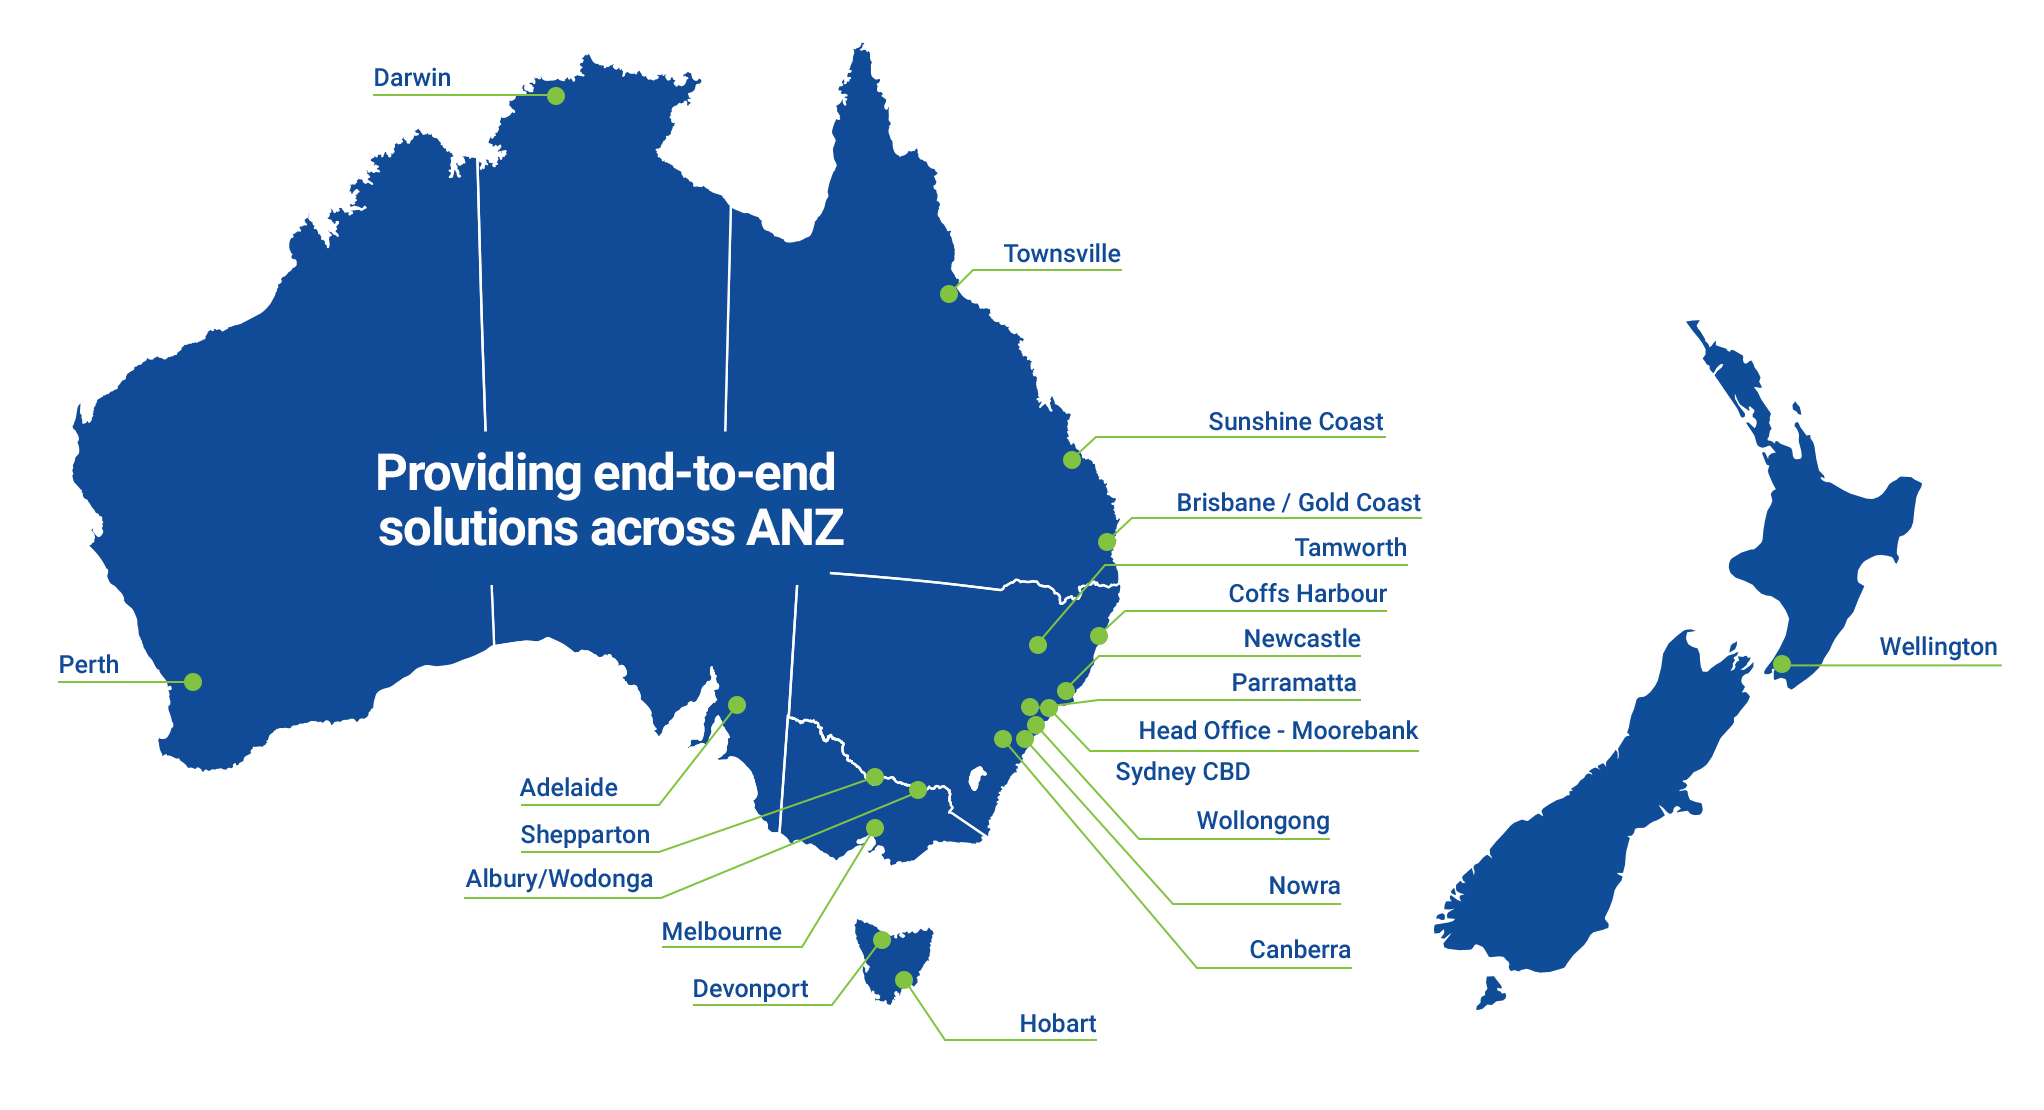 Map of Australia and New Zealand branch locations